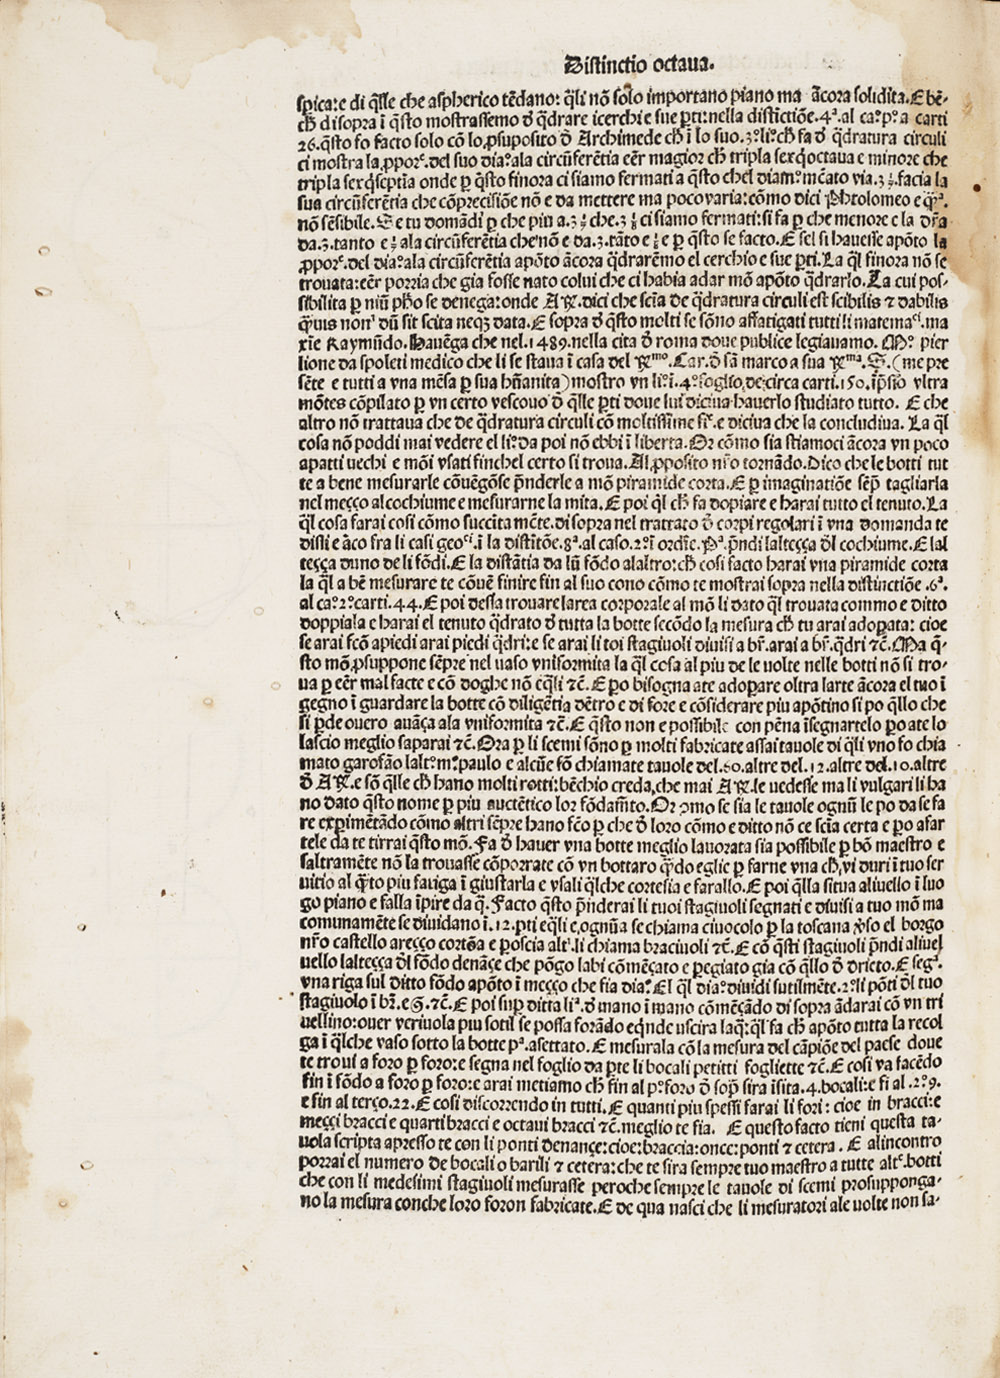 f74 - verso,  Image number:sil7-108-56a